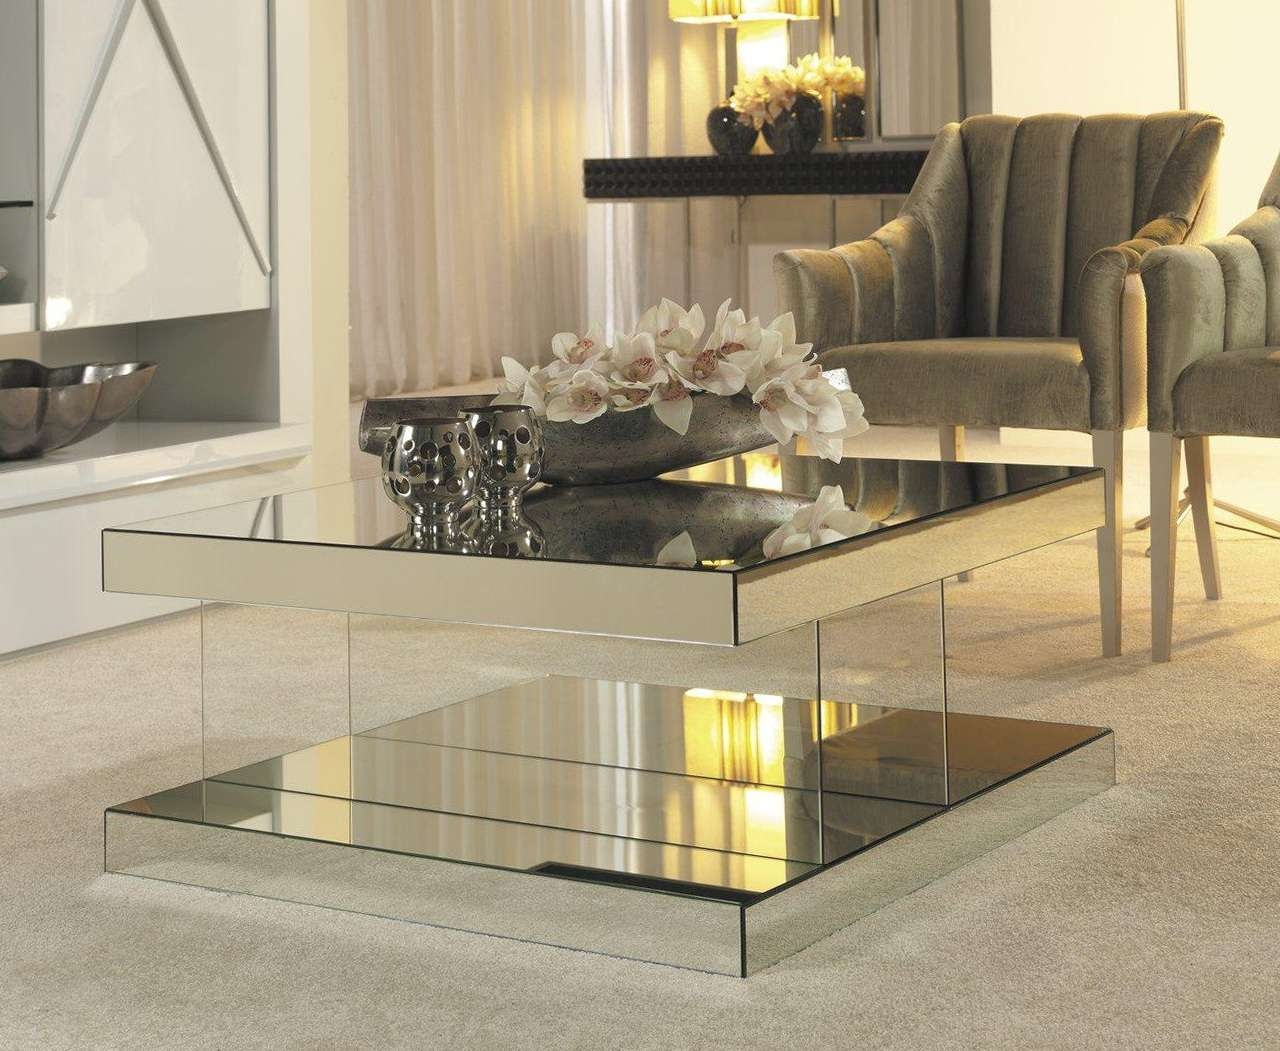 Luxury Mirrored Coffee Table — Cabinets, Beds, Sofas And For Preferred Luxury Coffee Tables (View 8 of 20)